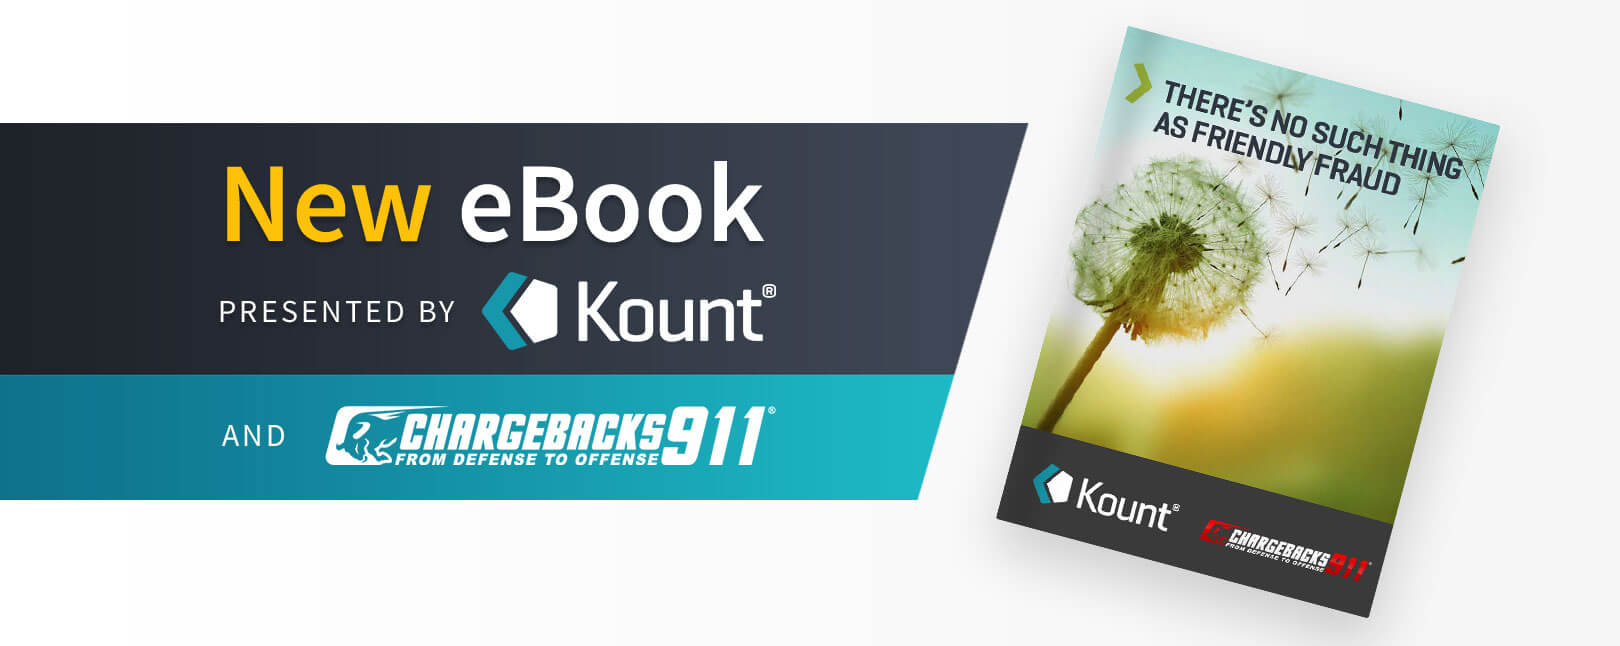 Kount ebook